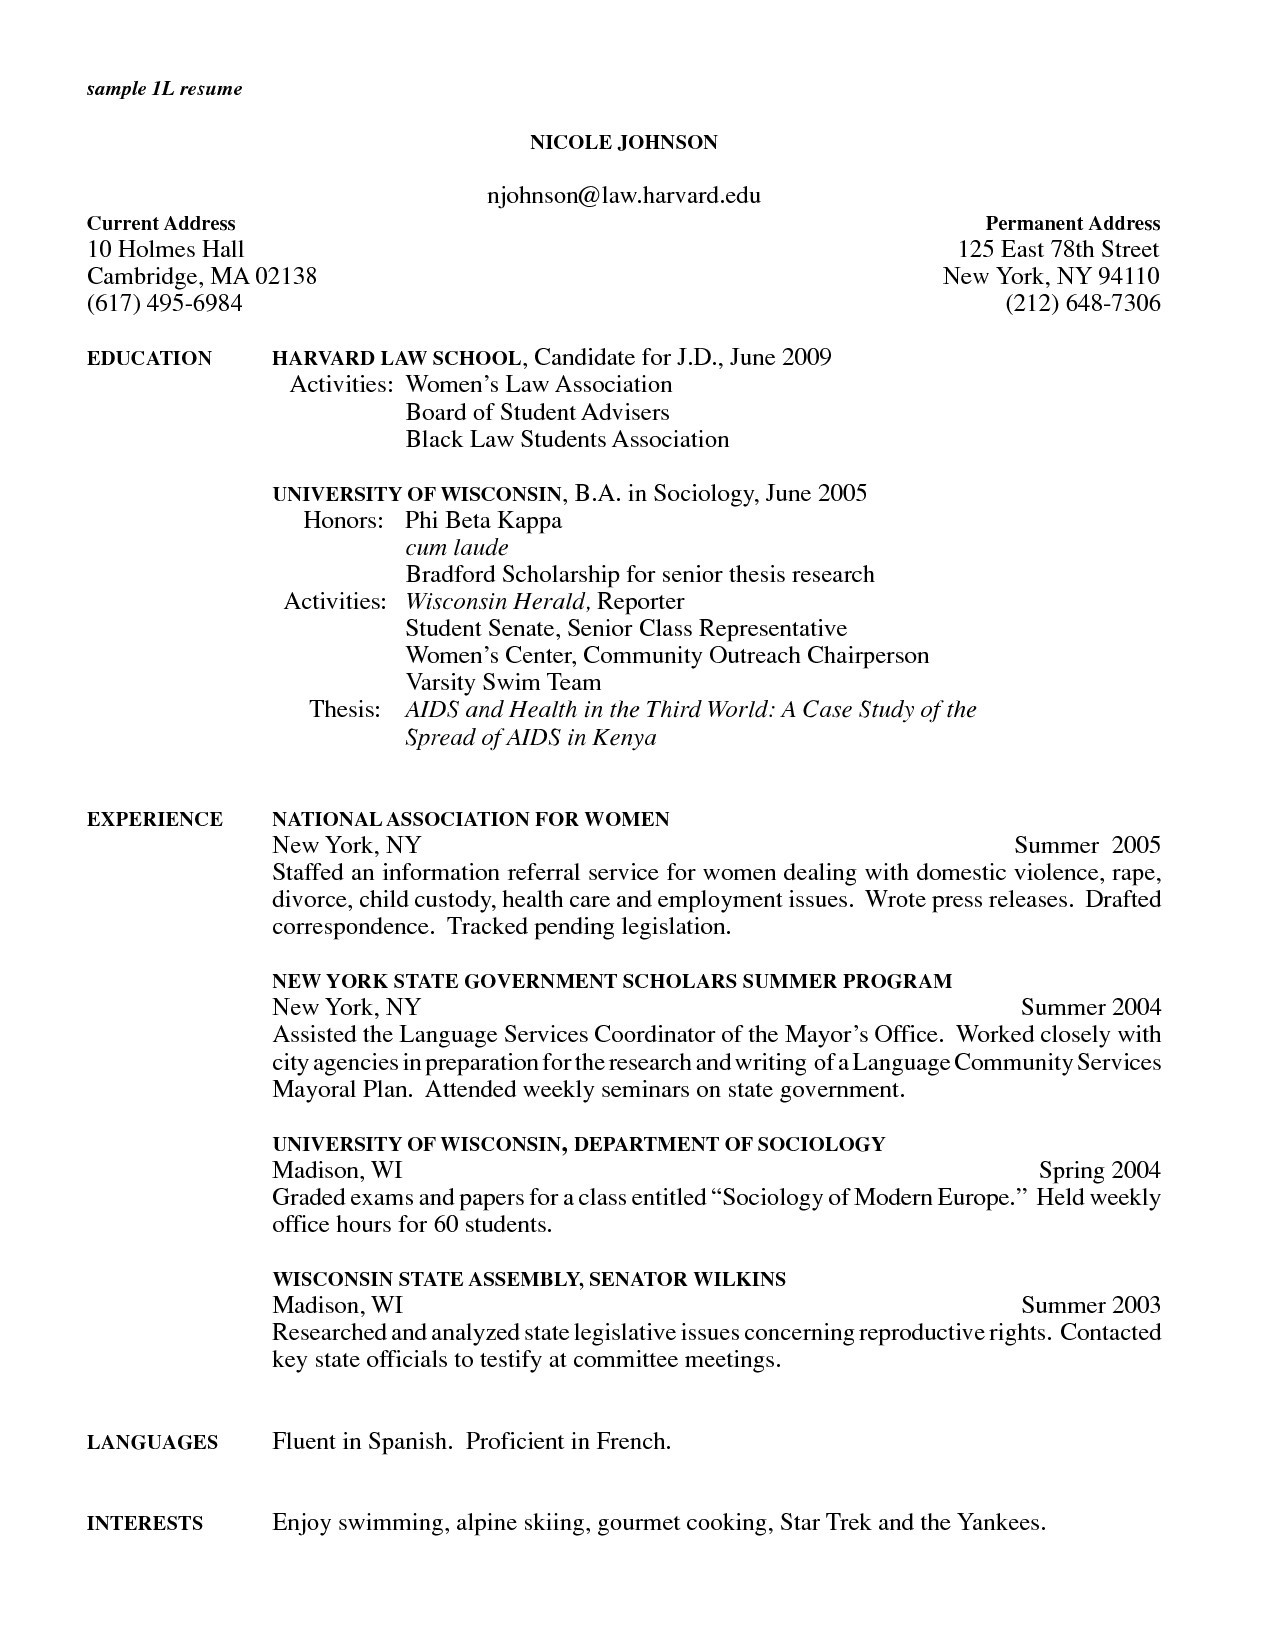 Grad School Resume - Example Resume Examples for Graduate School Application